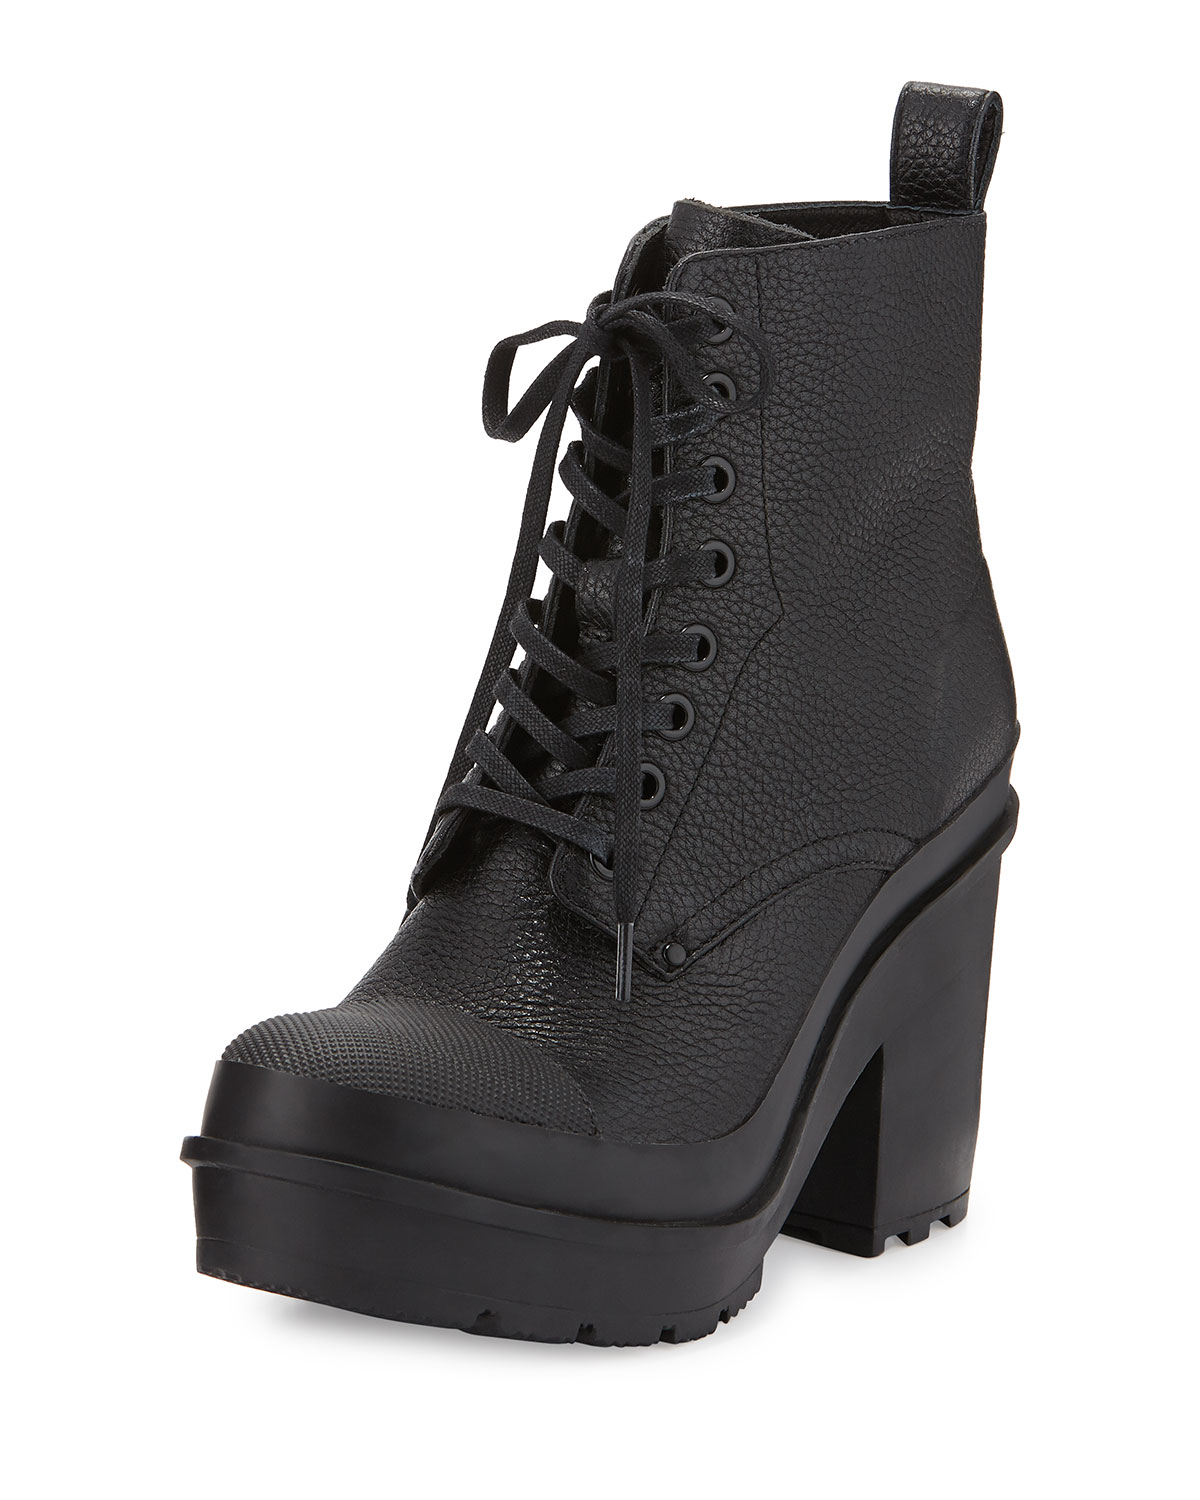 Women's Lace Up Black Leather Boots | Santa Barbara Institute for ...